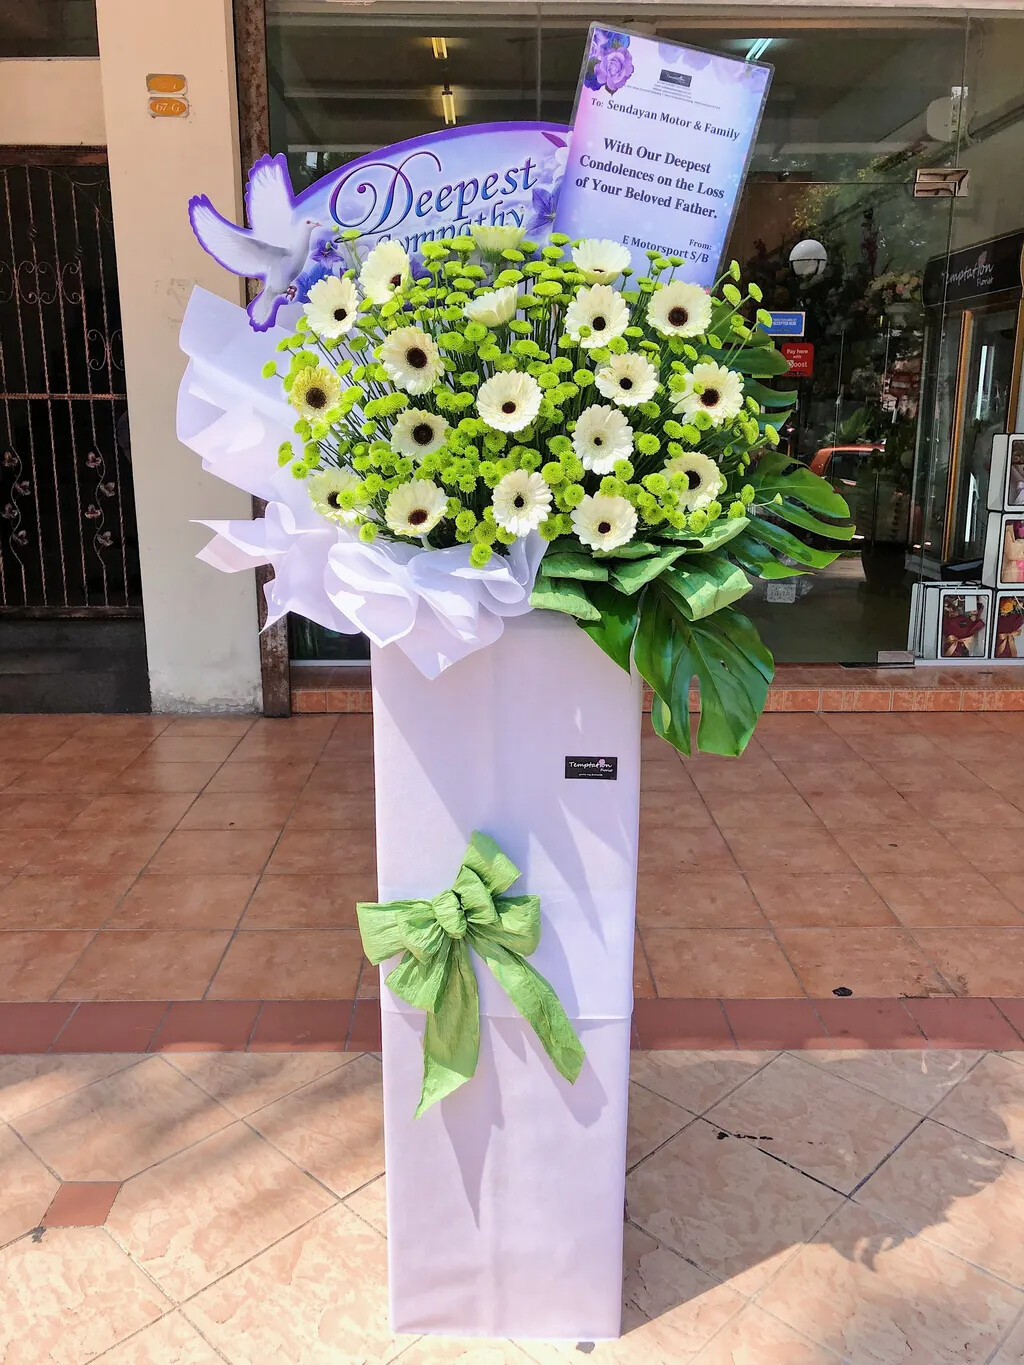 Deepest Sympathy Condolence Flower Stand (By: Temptation Florist from Seremban)